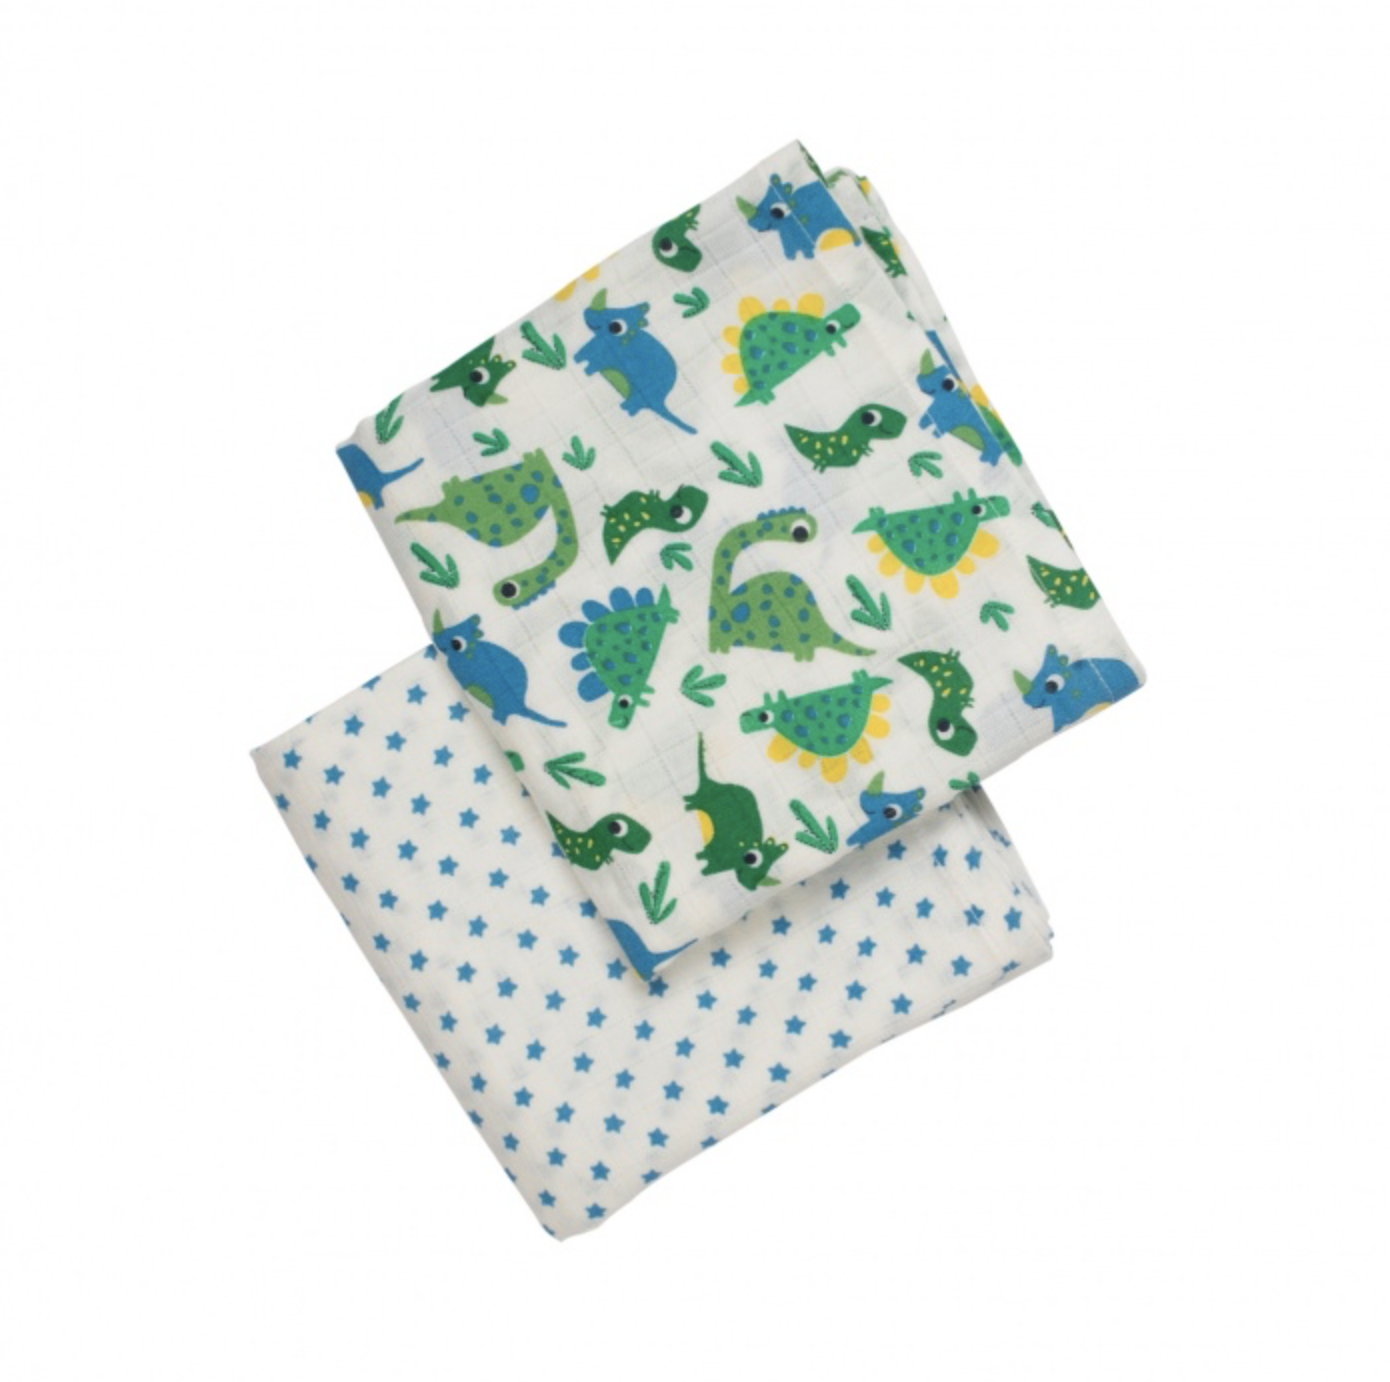 Frugi Lovely Muslins 2 Pack - Multi Dinos Print